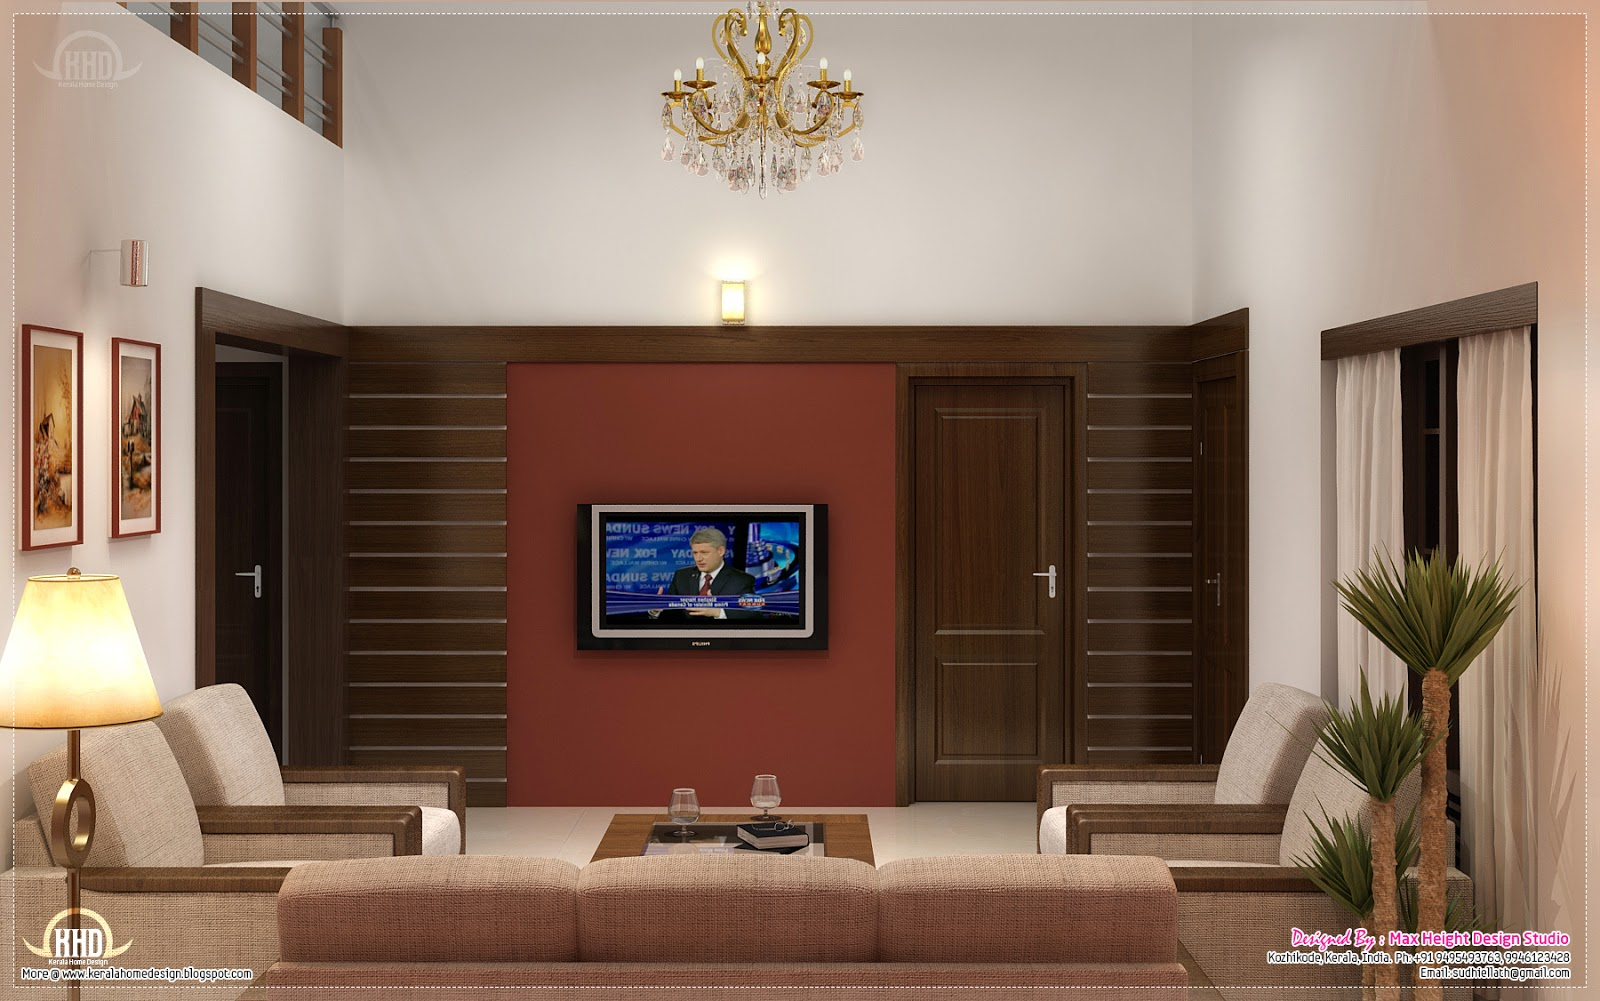 Home interior design ideas house design plans for Interior design for living room chennai